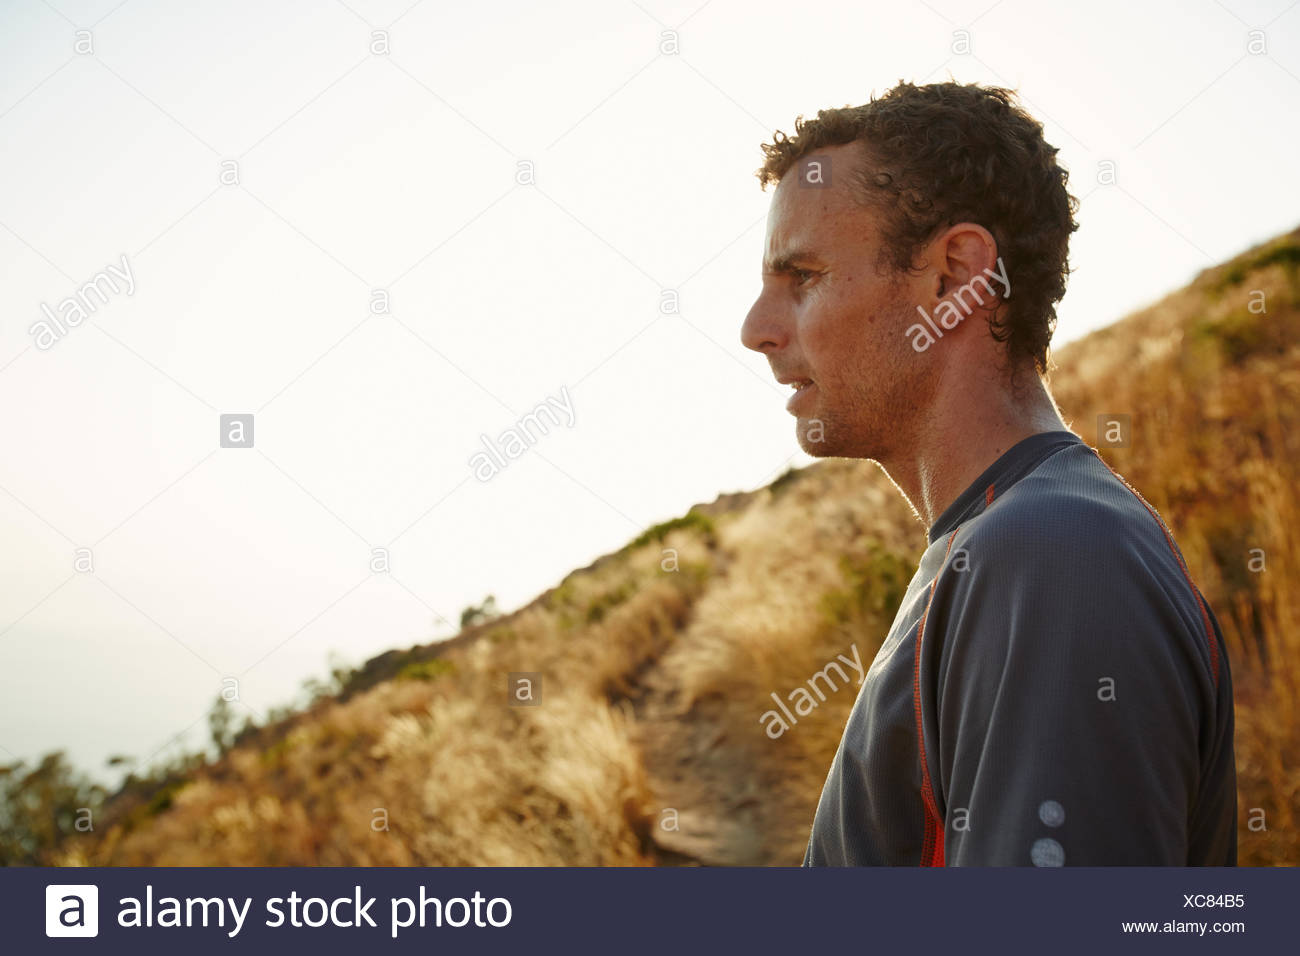 Tired runner taking a break looking away on trail - Stock Image